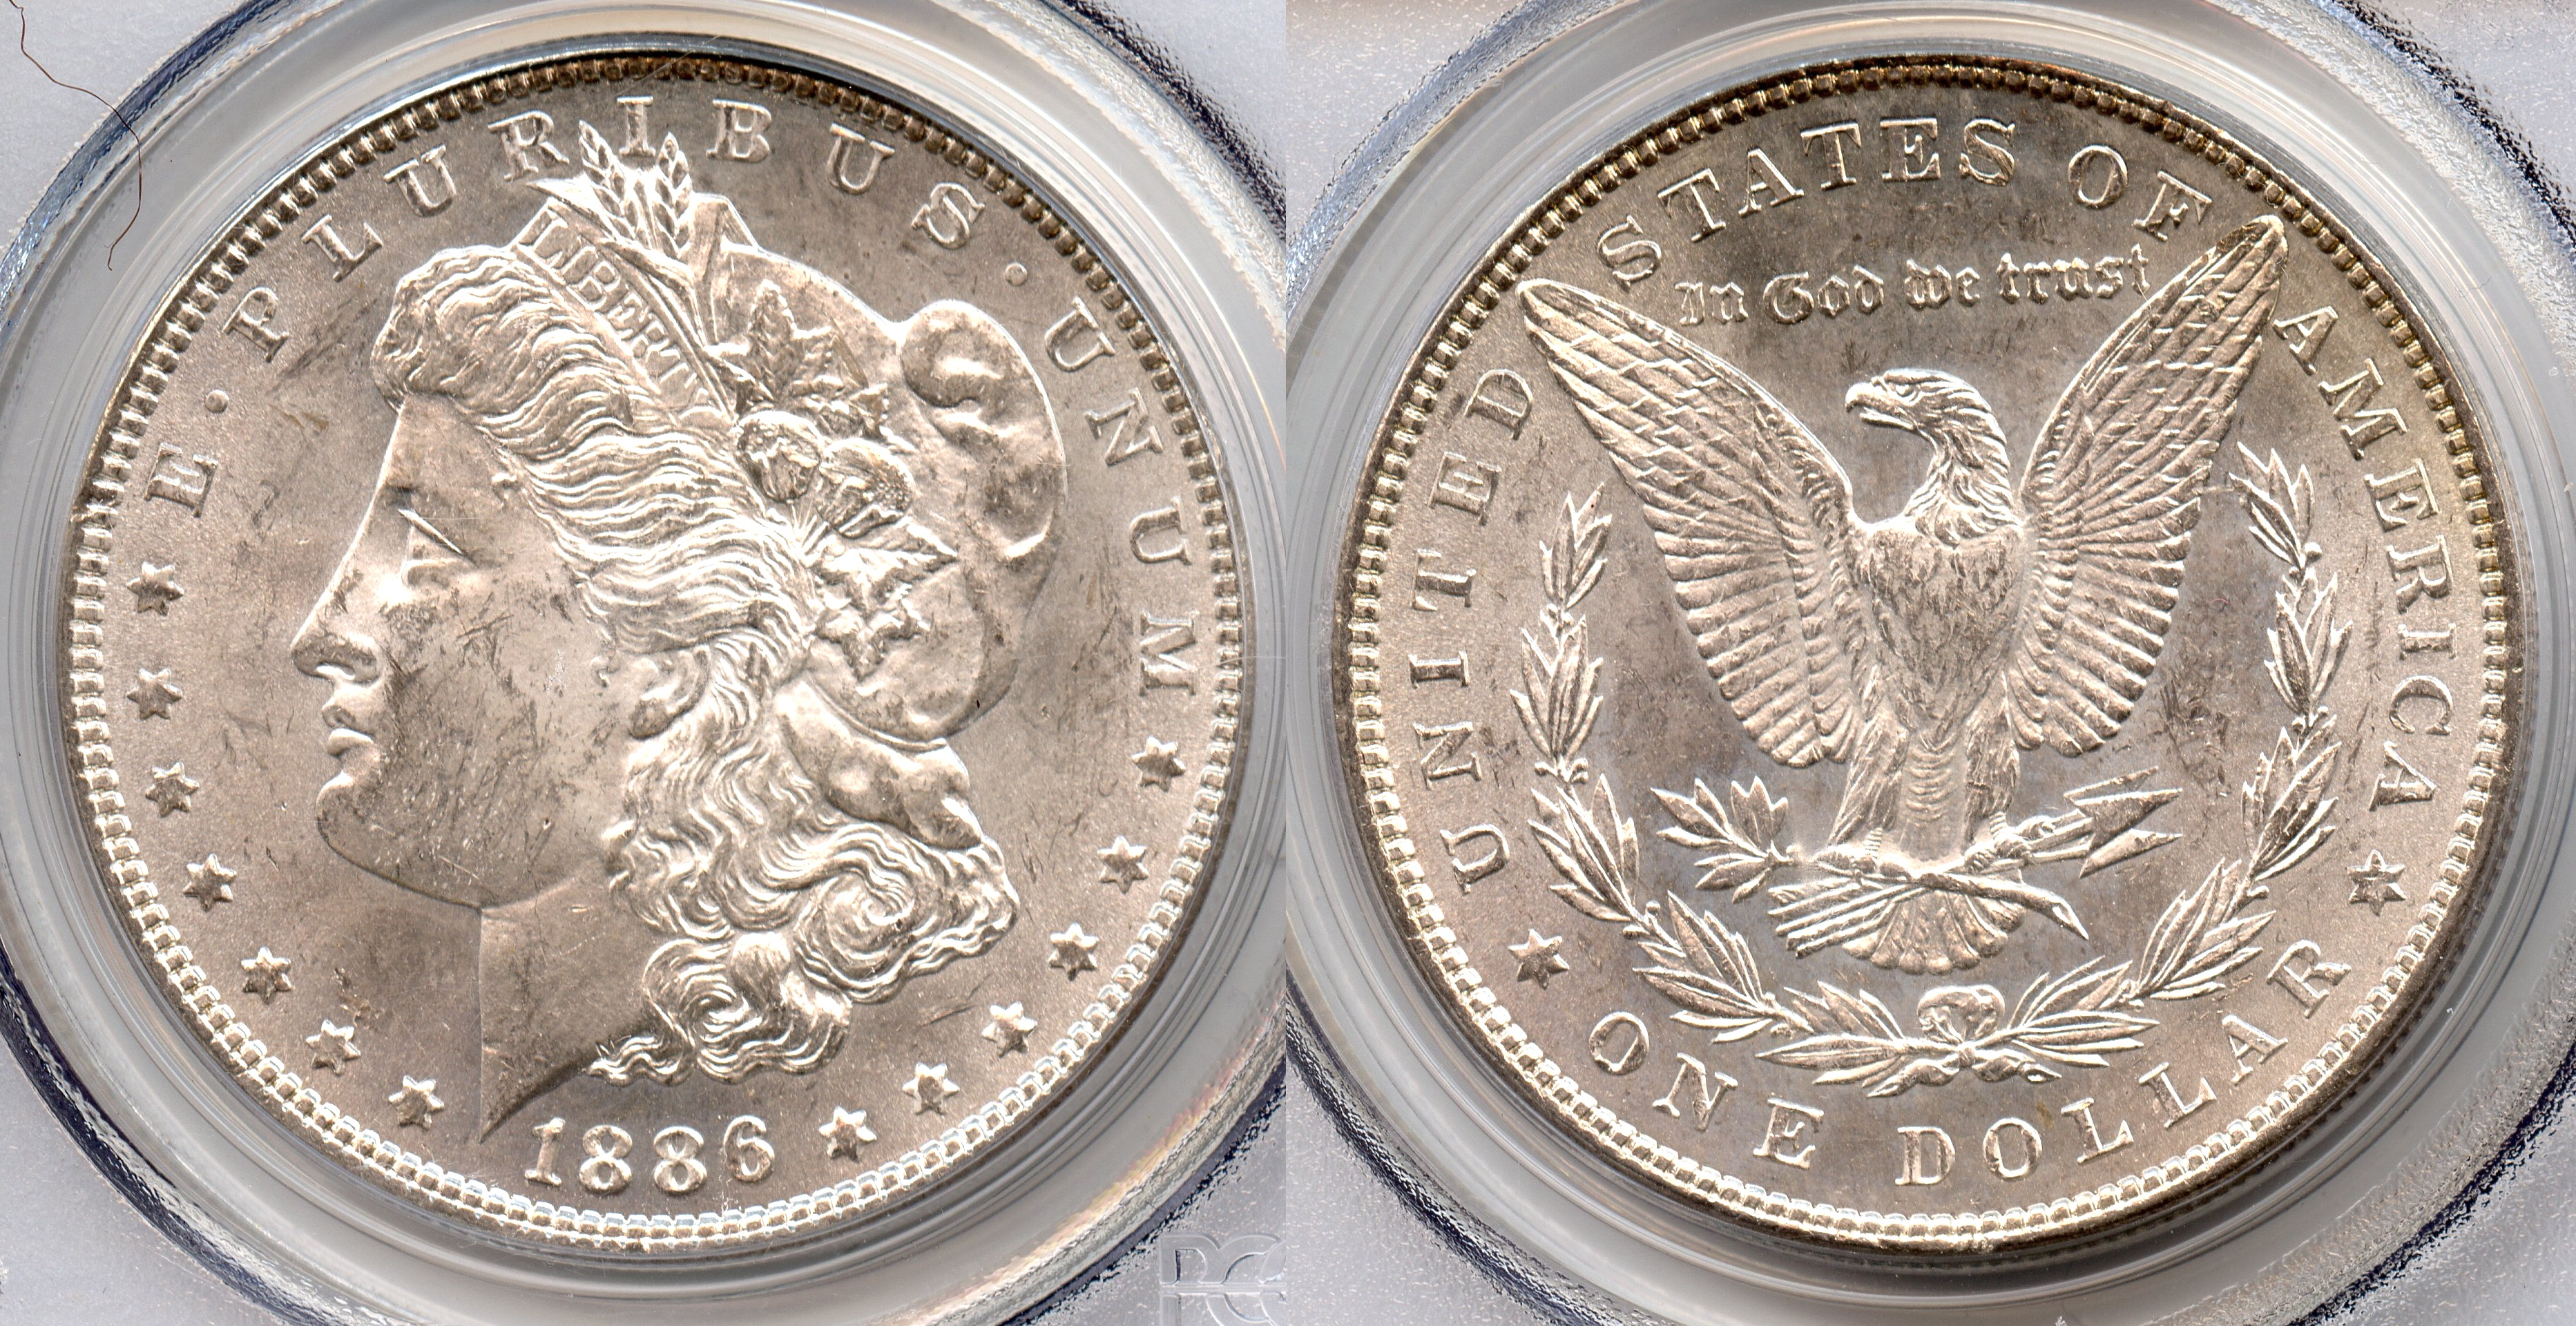 1886 Morgan Silver Dollar PCGS MS-63 #a